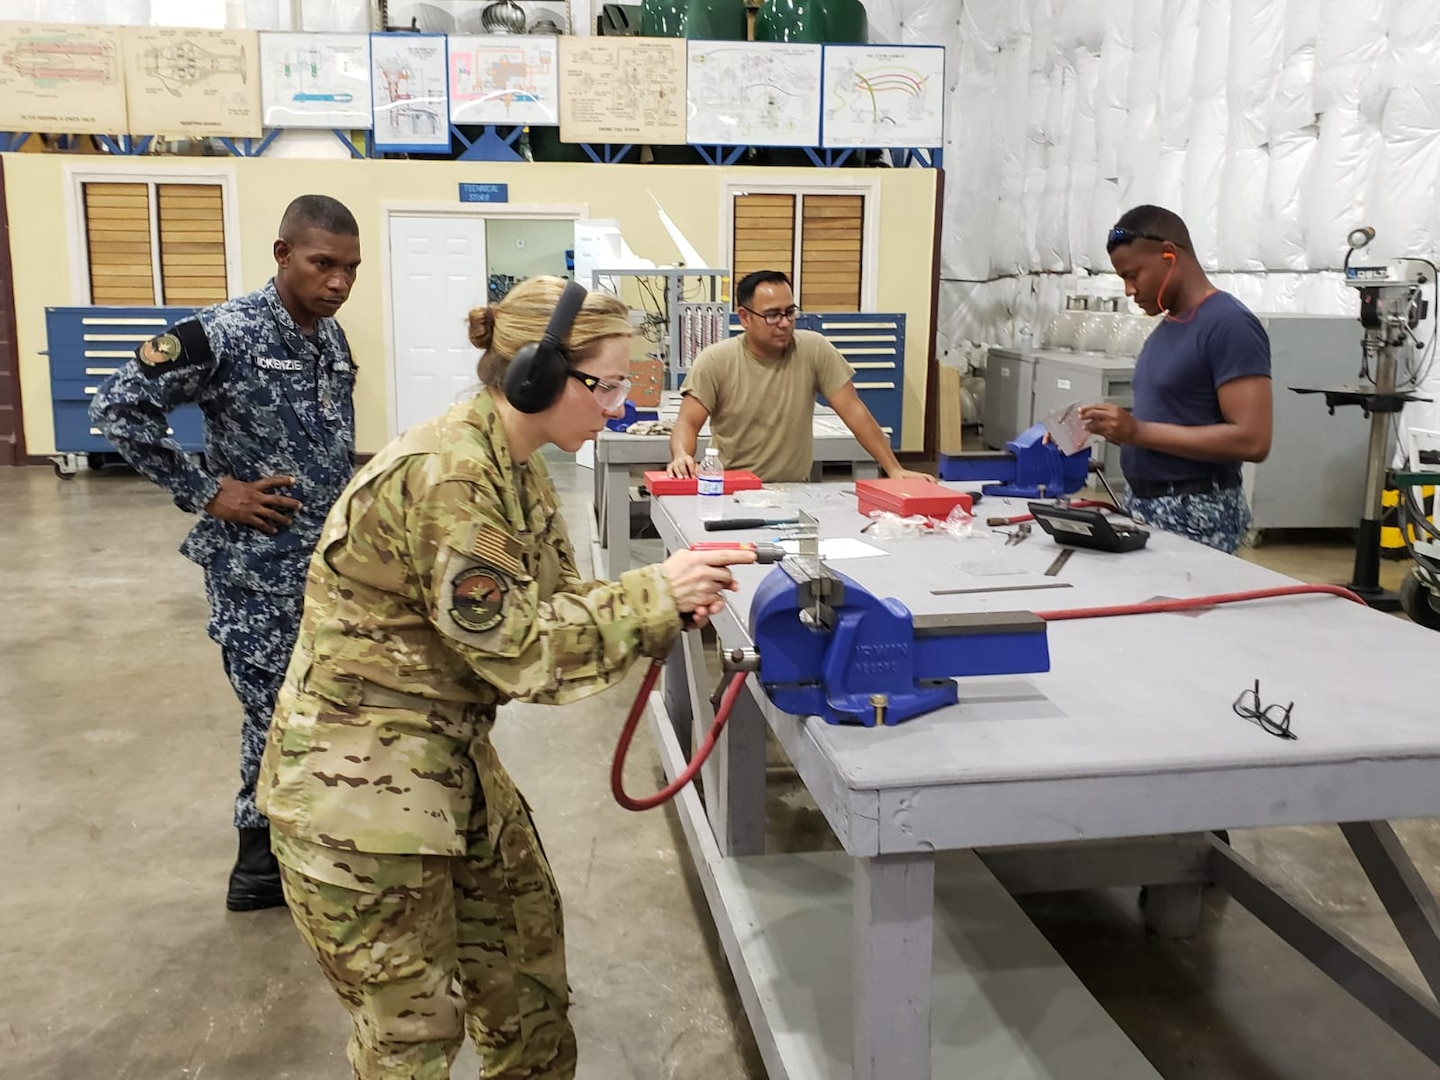 Air Force lieutenant colonel shows how to operate an impact driver to Jamaican service members.